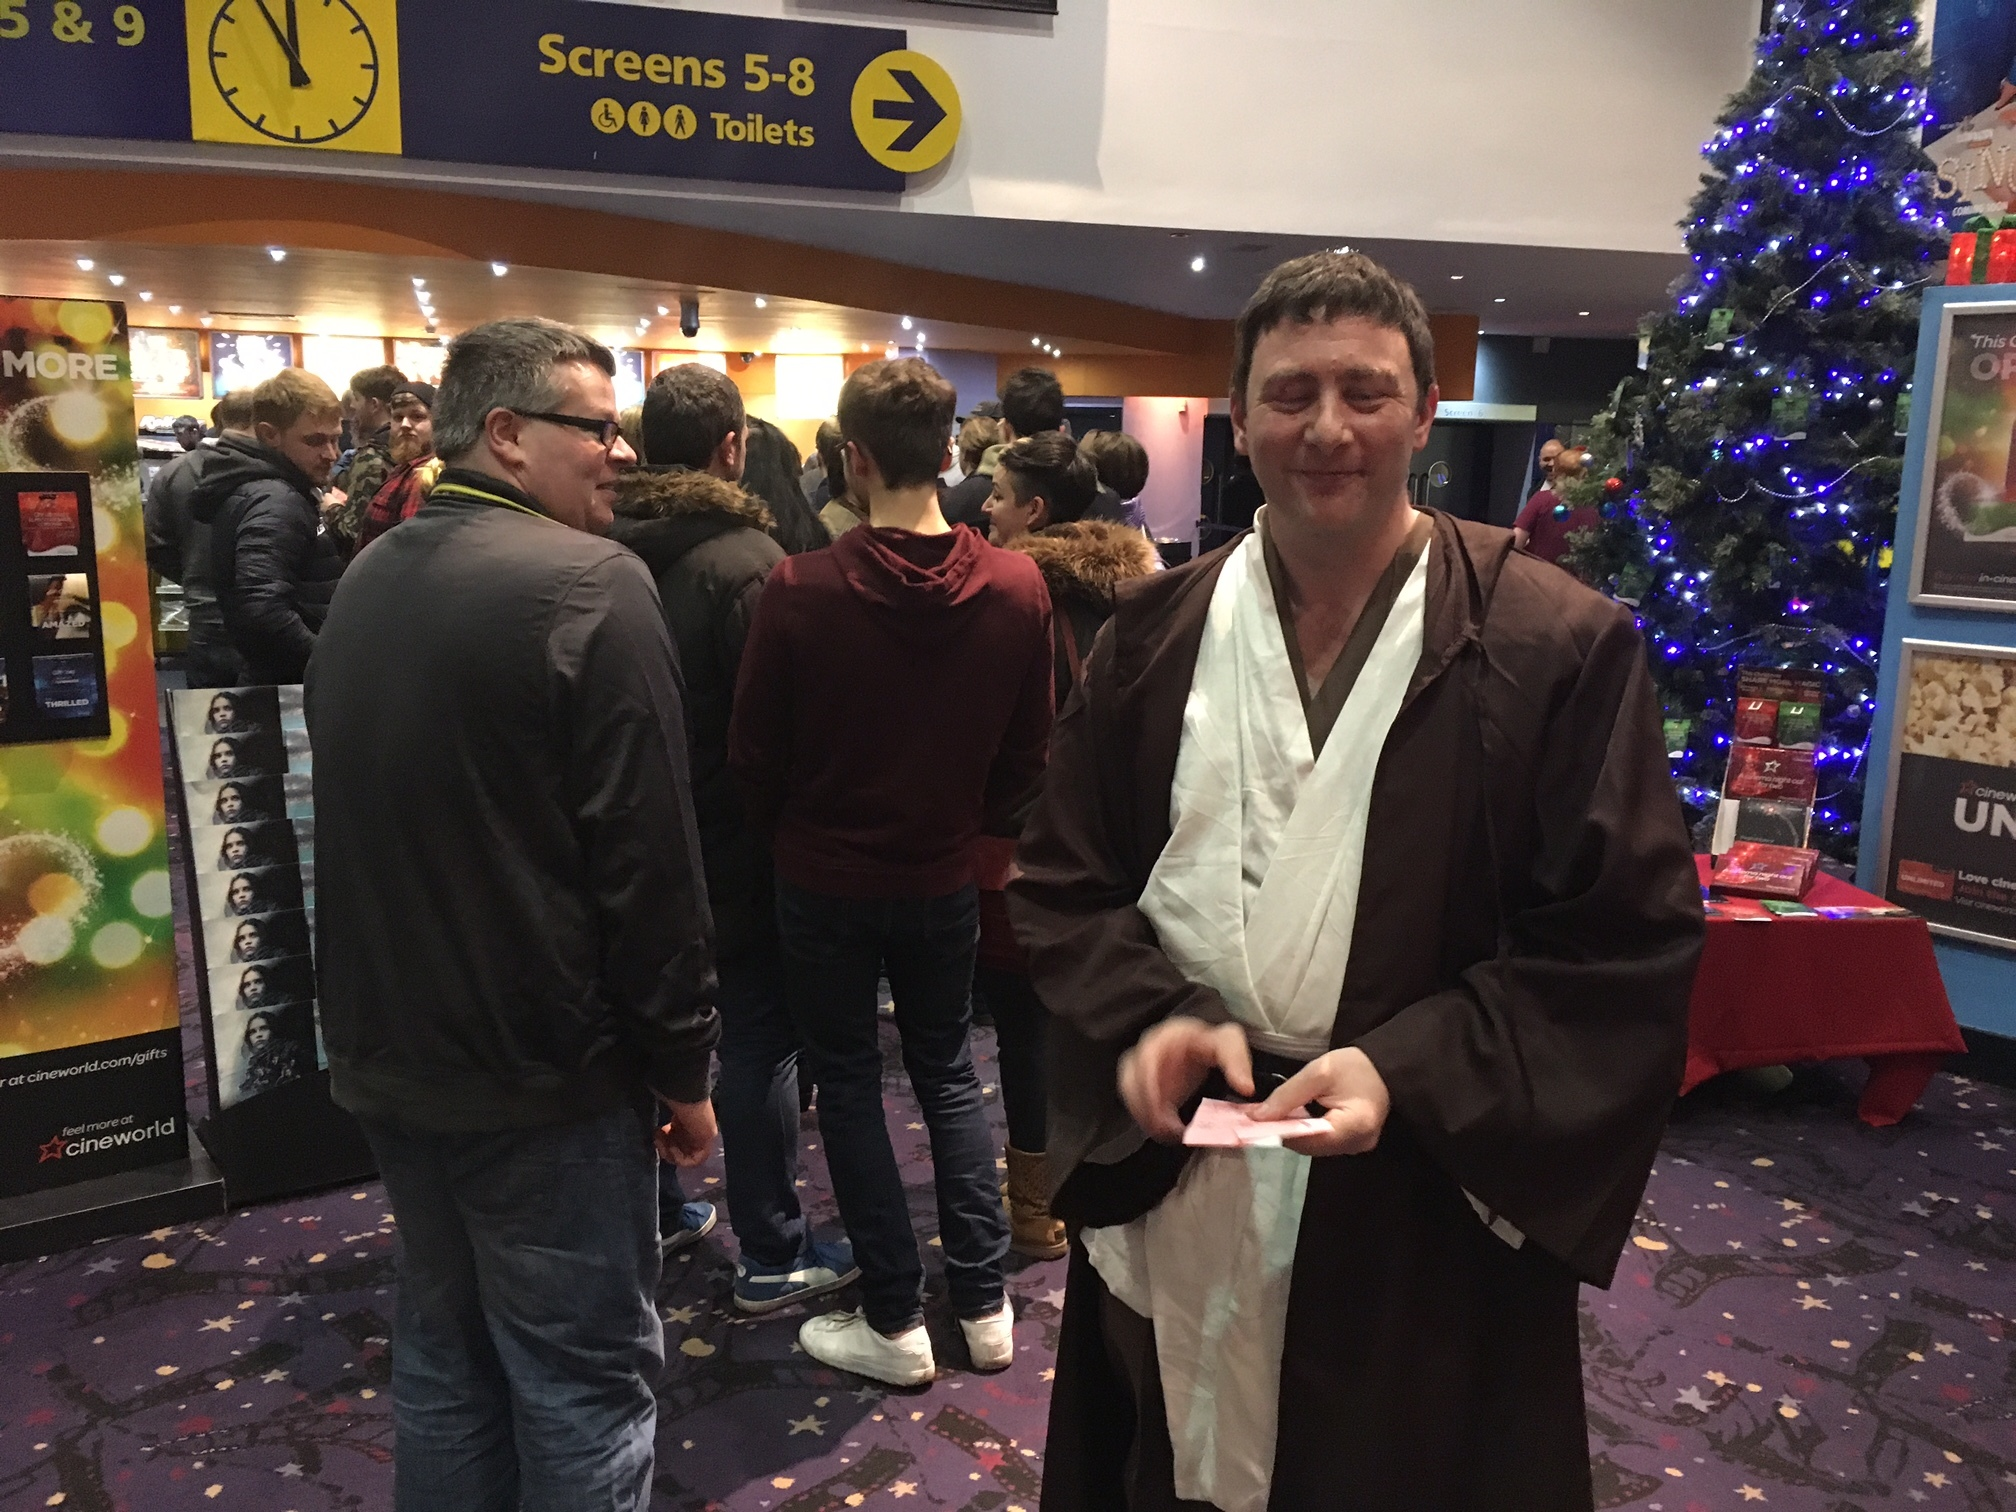 Star Wars premiere screenings in Dundee are a serious business